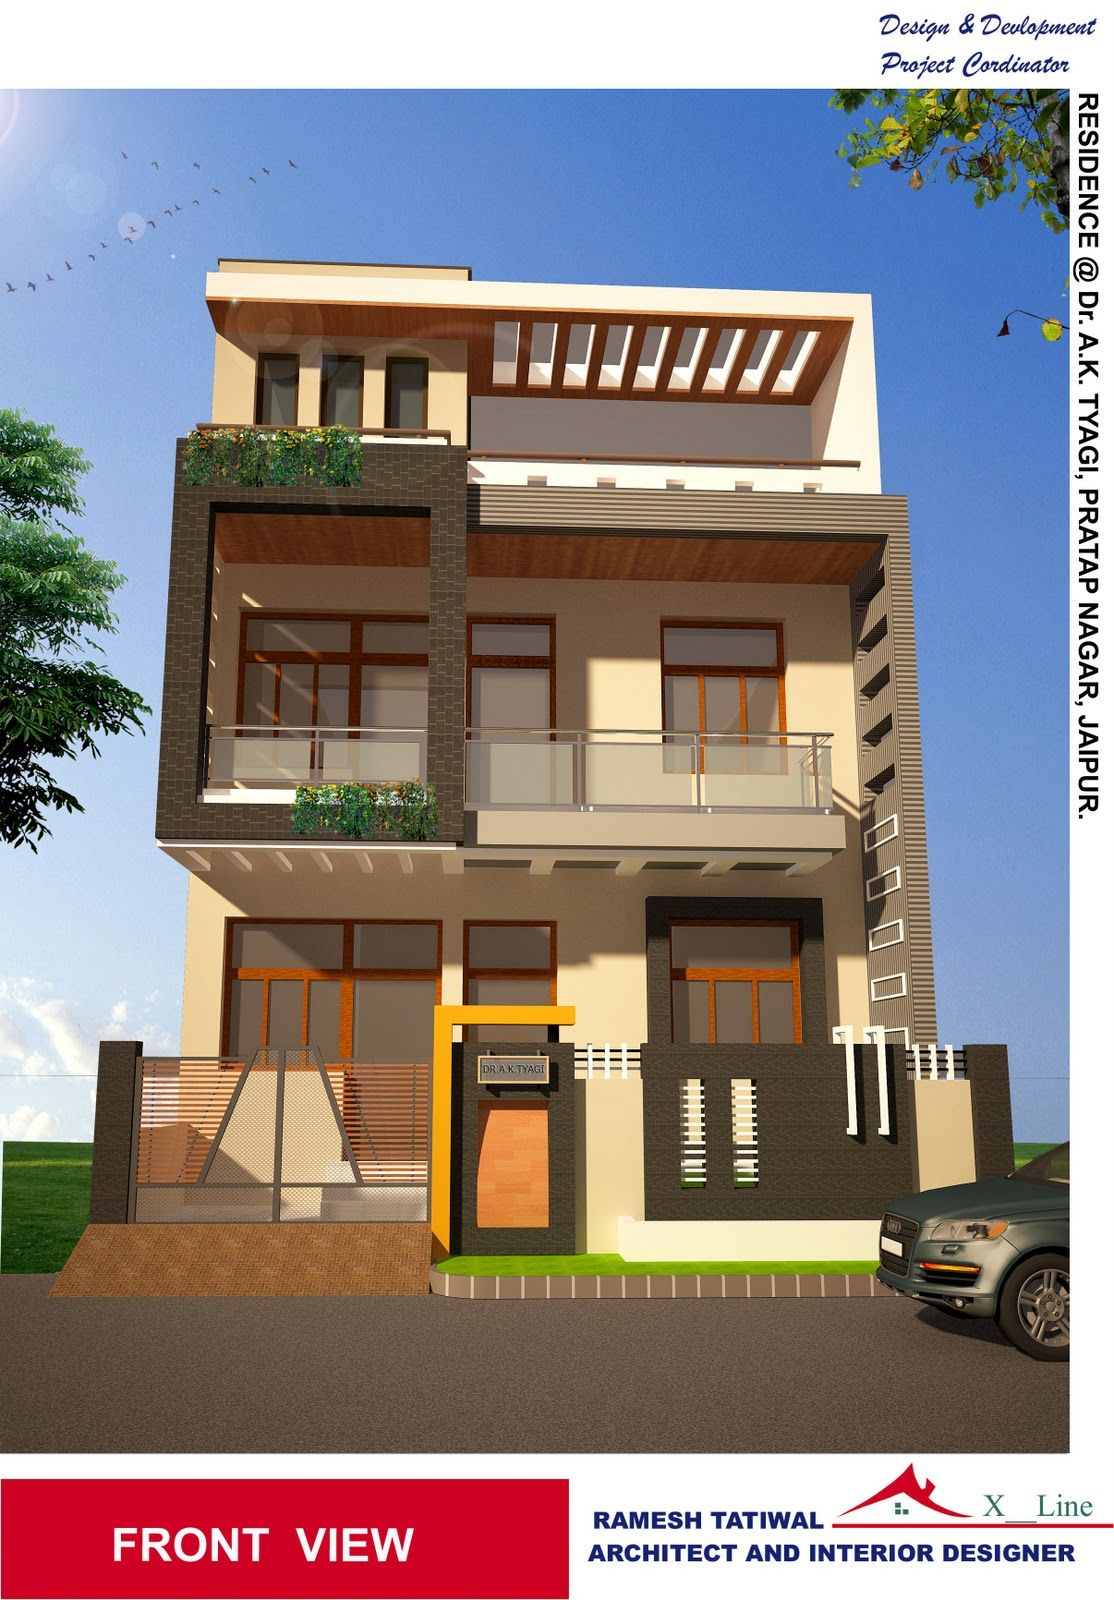 Housedesigns modern indian home architecture design from for Home architecture facebook